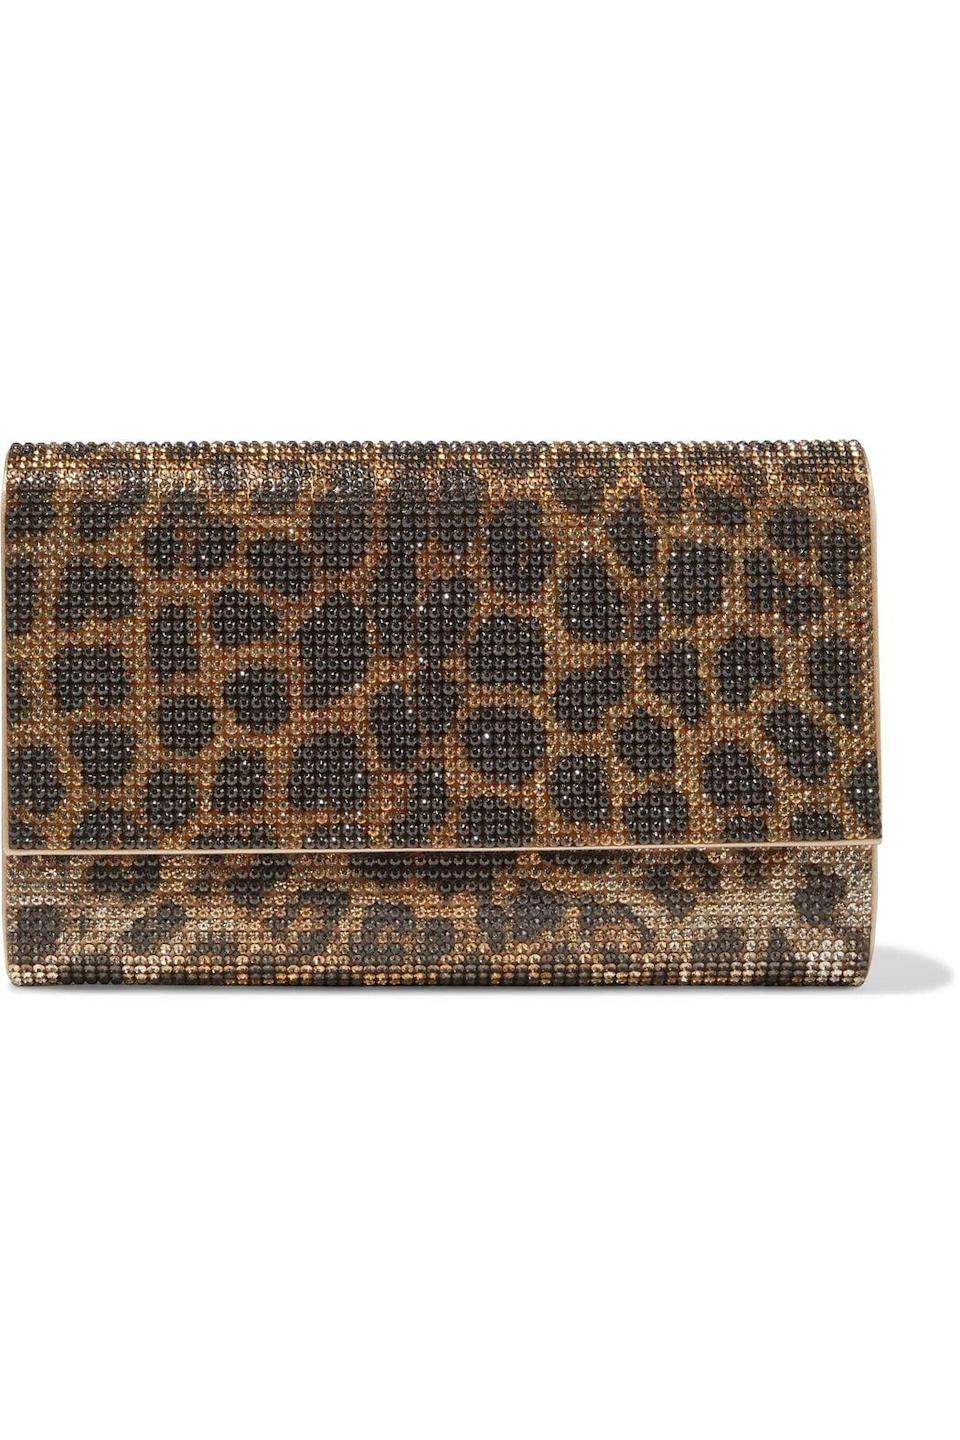 <p>The <span>Judith Leiber Animal Print Crystal Satin Clutch</span> ($648, originally $1,295) is something Kris Jenner, who is a Judith Leiber connoisseur, would love!</p>